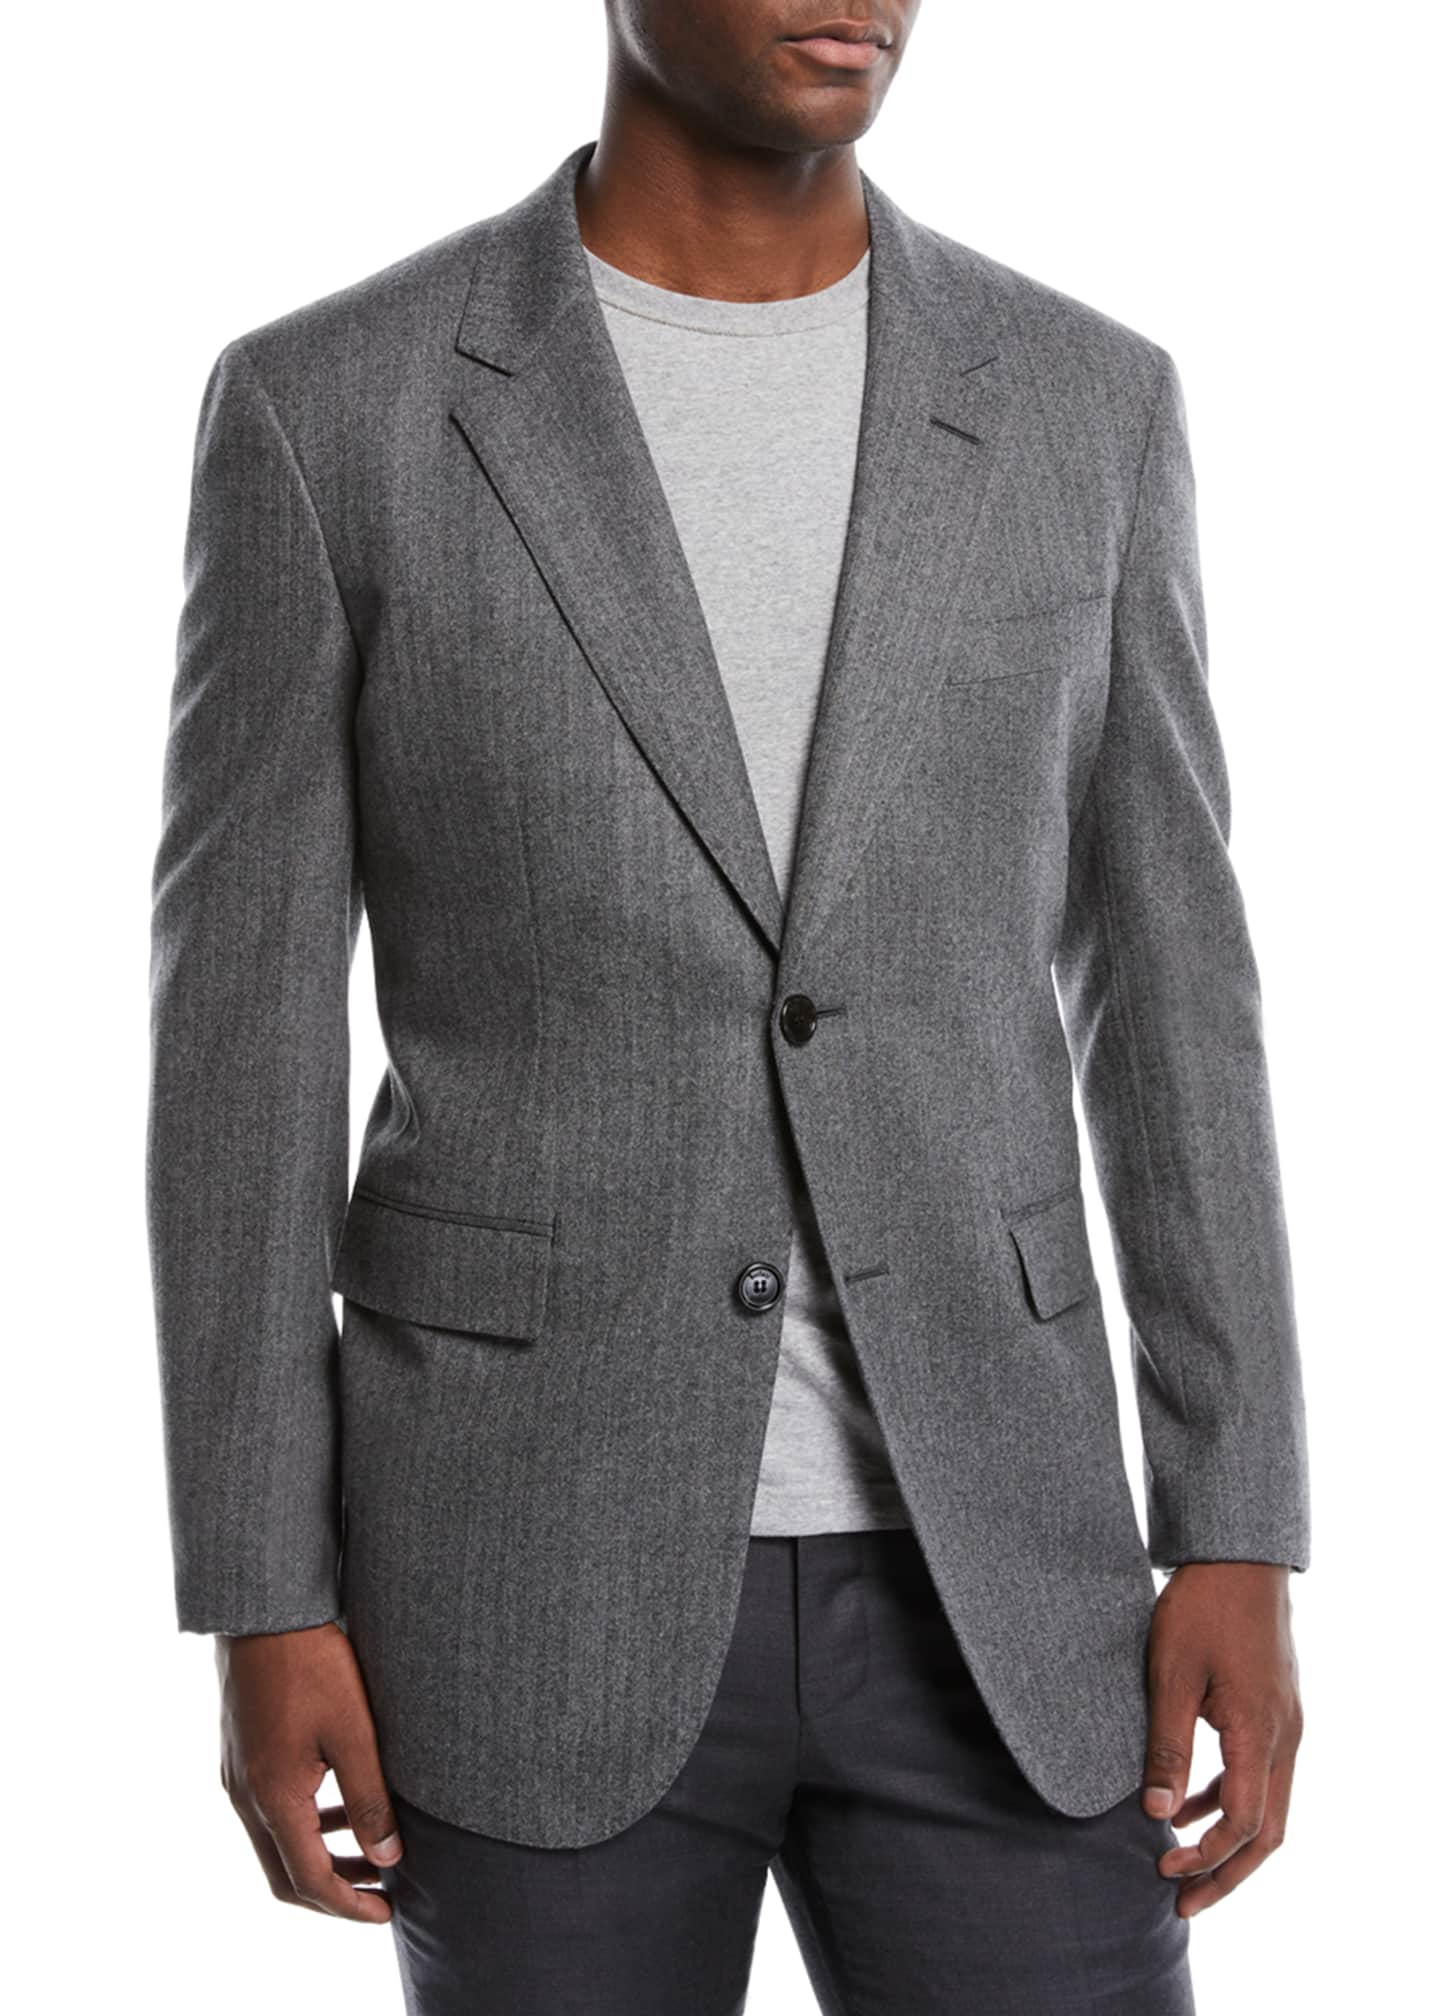 Berluti Men's Two-Button Wool Herringbone Blazer